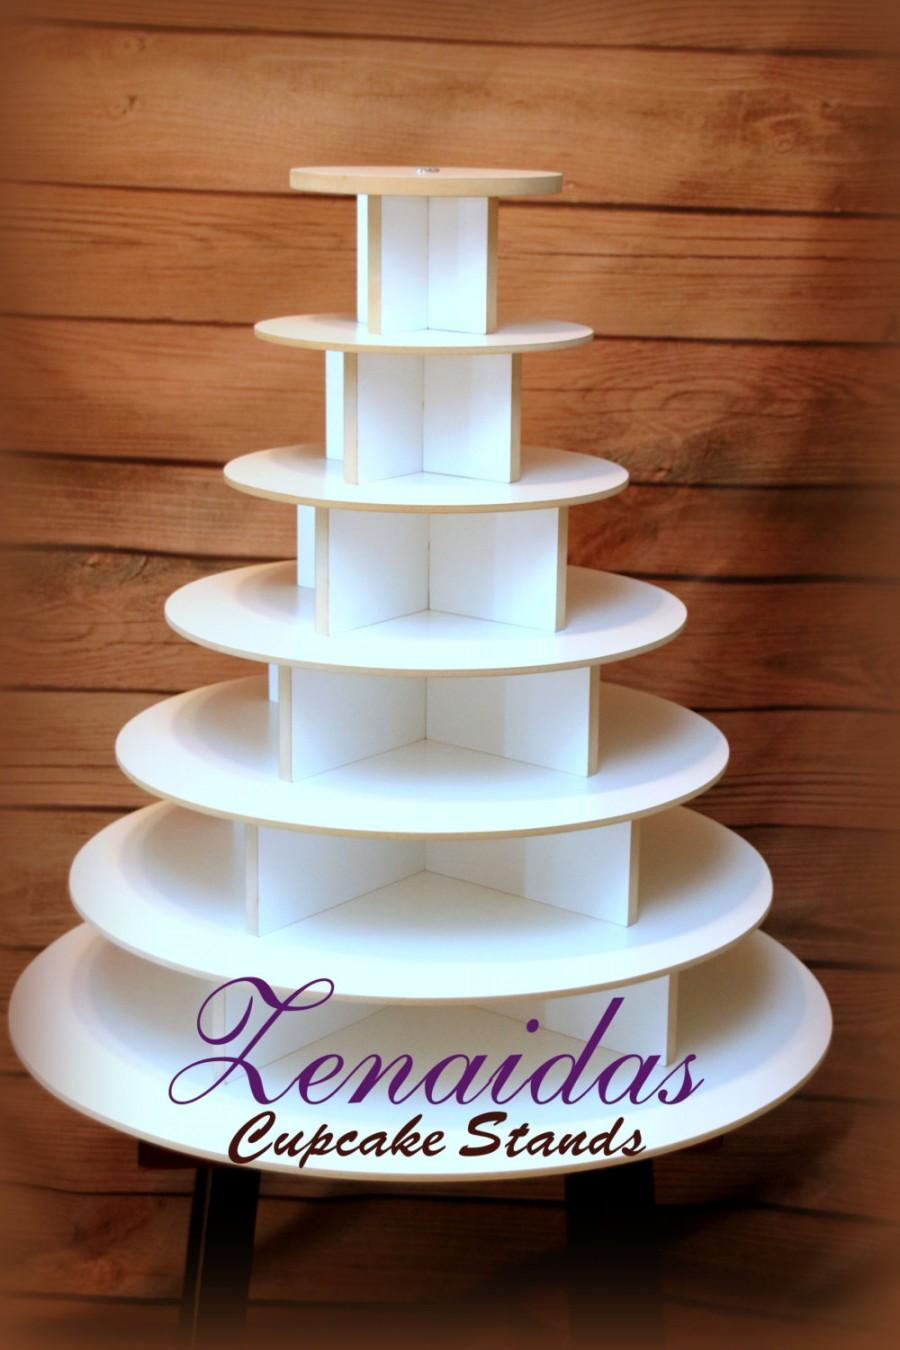 Свадьба - Cupcake Stand  7 Tier Round 200 Cupcakes with Threaded Rod White Melamine Wood Cupcake Tower Display Birthday Wedding Donut Stand